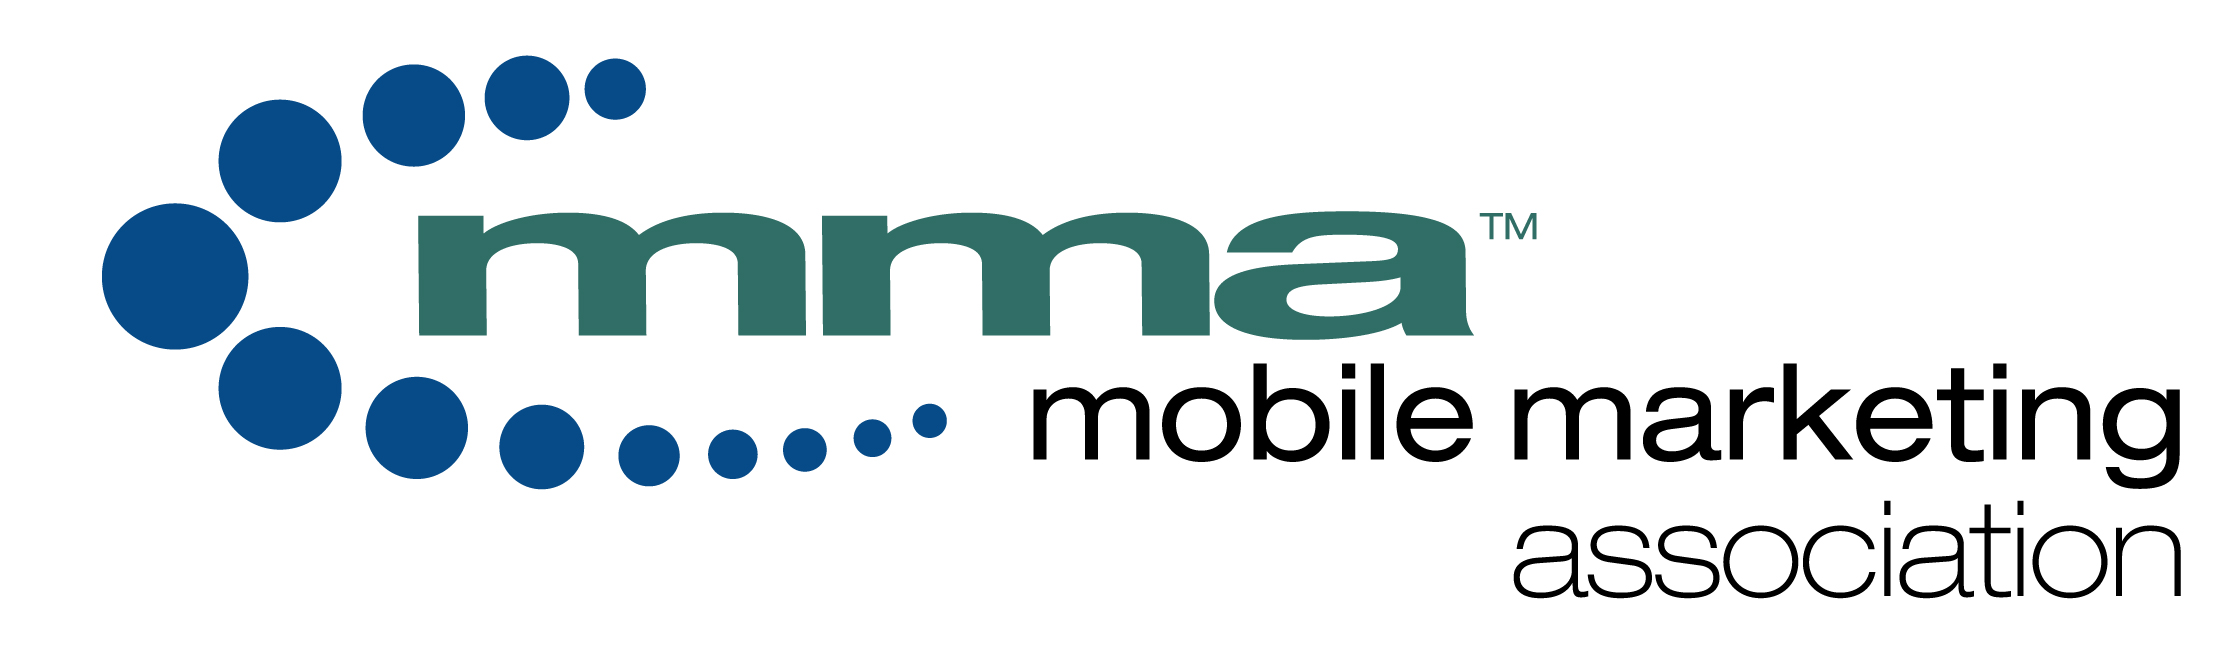 Mobile Marketing Association (MMA) Logo